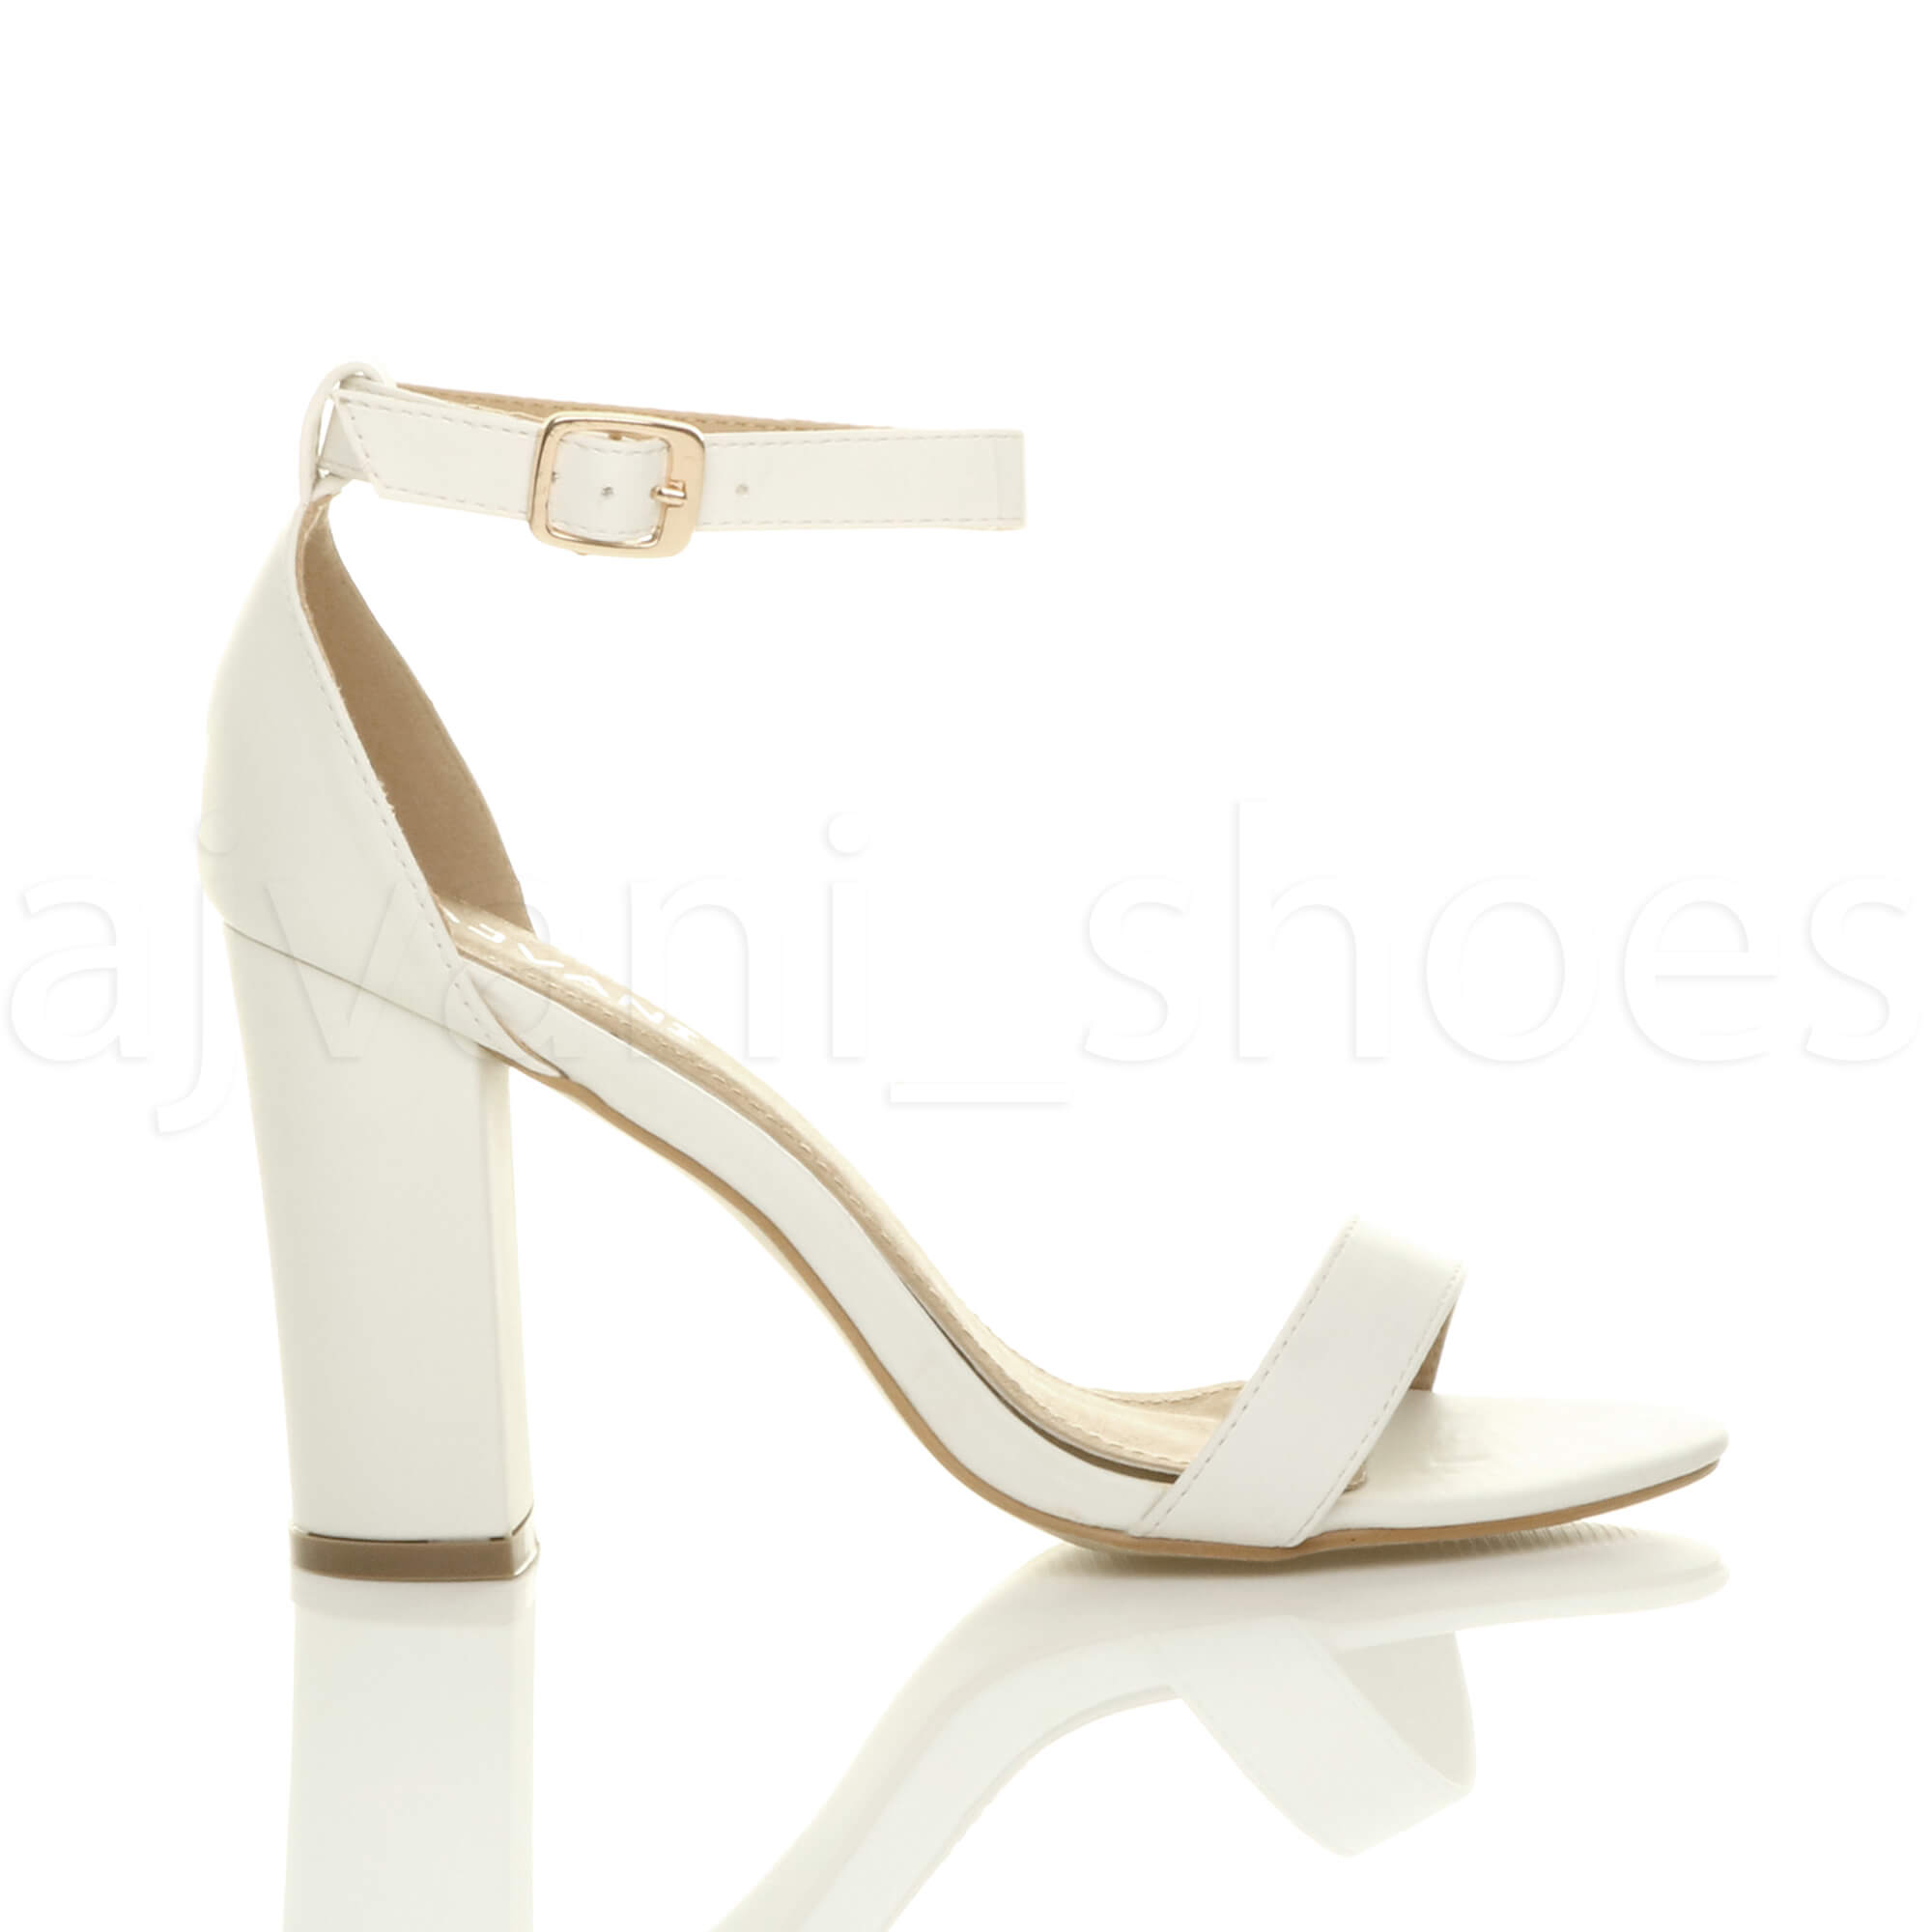 WOMENS-LADIES-BLOCK-HIGH-HEEL-ANKLE-STRAP-PEEP-TOE-STRAPPY-SANDALS-SHOES-SIZE thumbnail 168